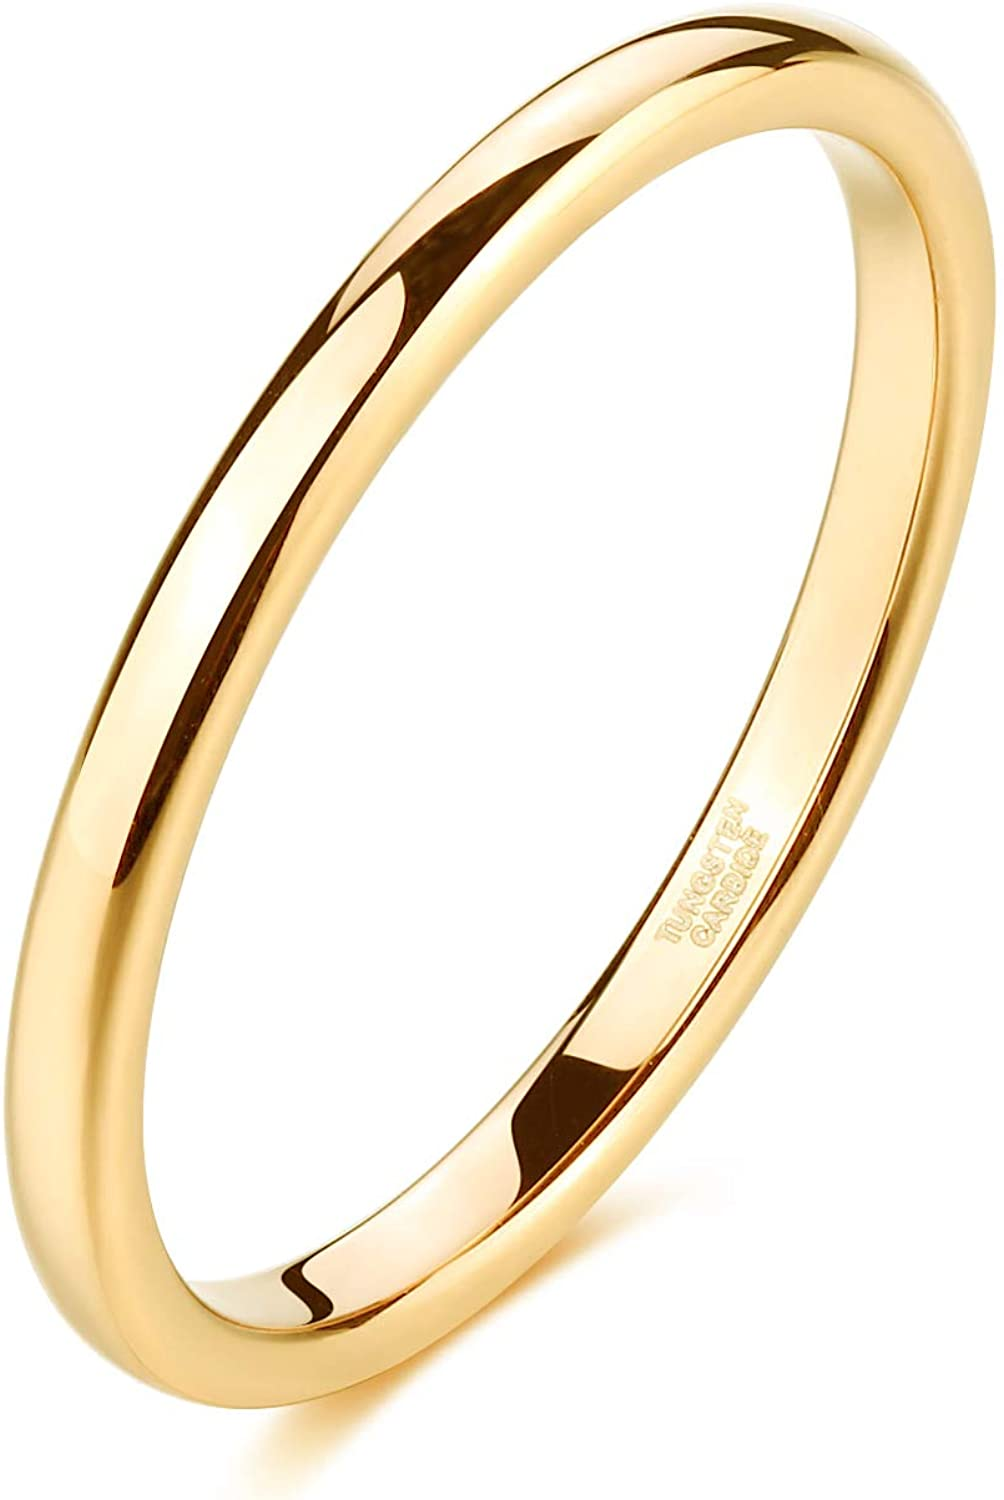 Tungsten Wedding Band Domed Mens Women/'s His Hers Unisex 6mm Promise Anniversary Engagement Comfort Fit Free Engraving Yellow Gold Plated